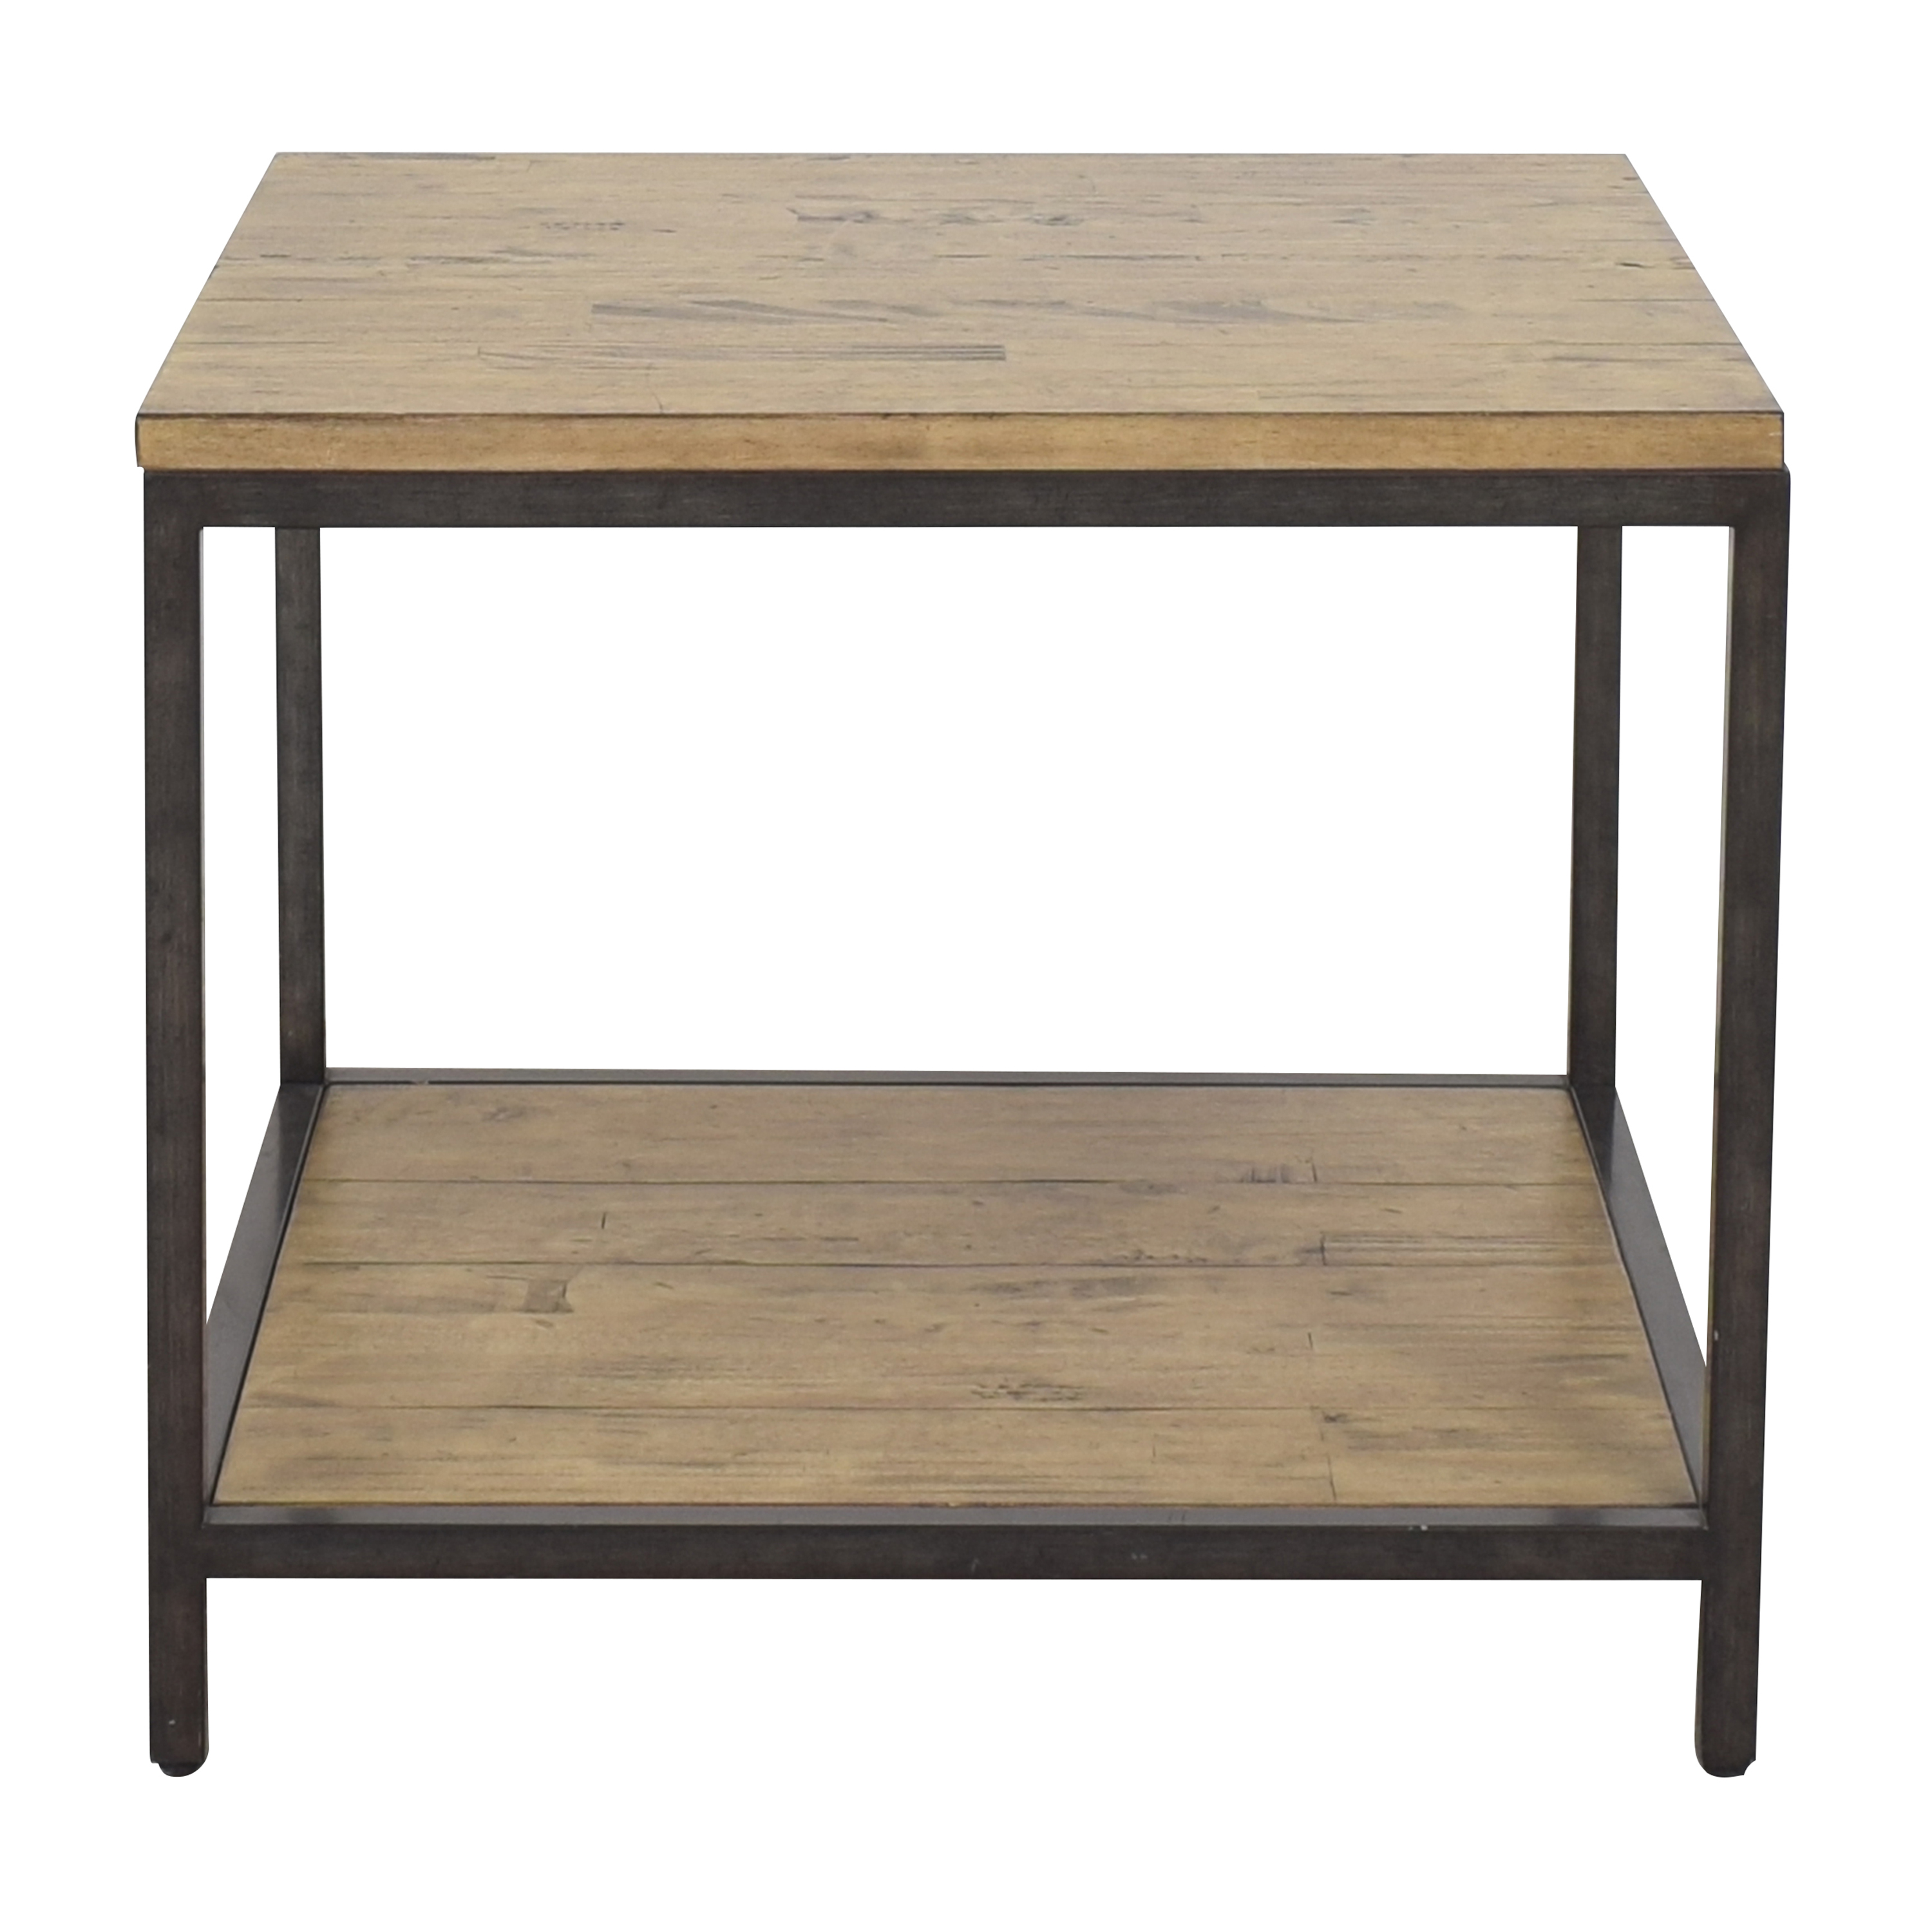 Hillsdale Furniture Hillsdale Furniture Durham Square End Table dimensions